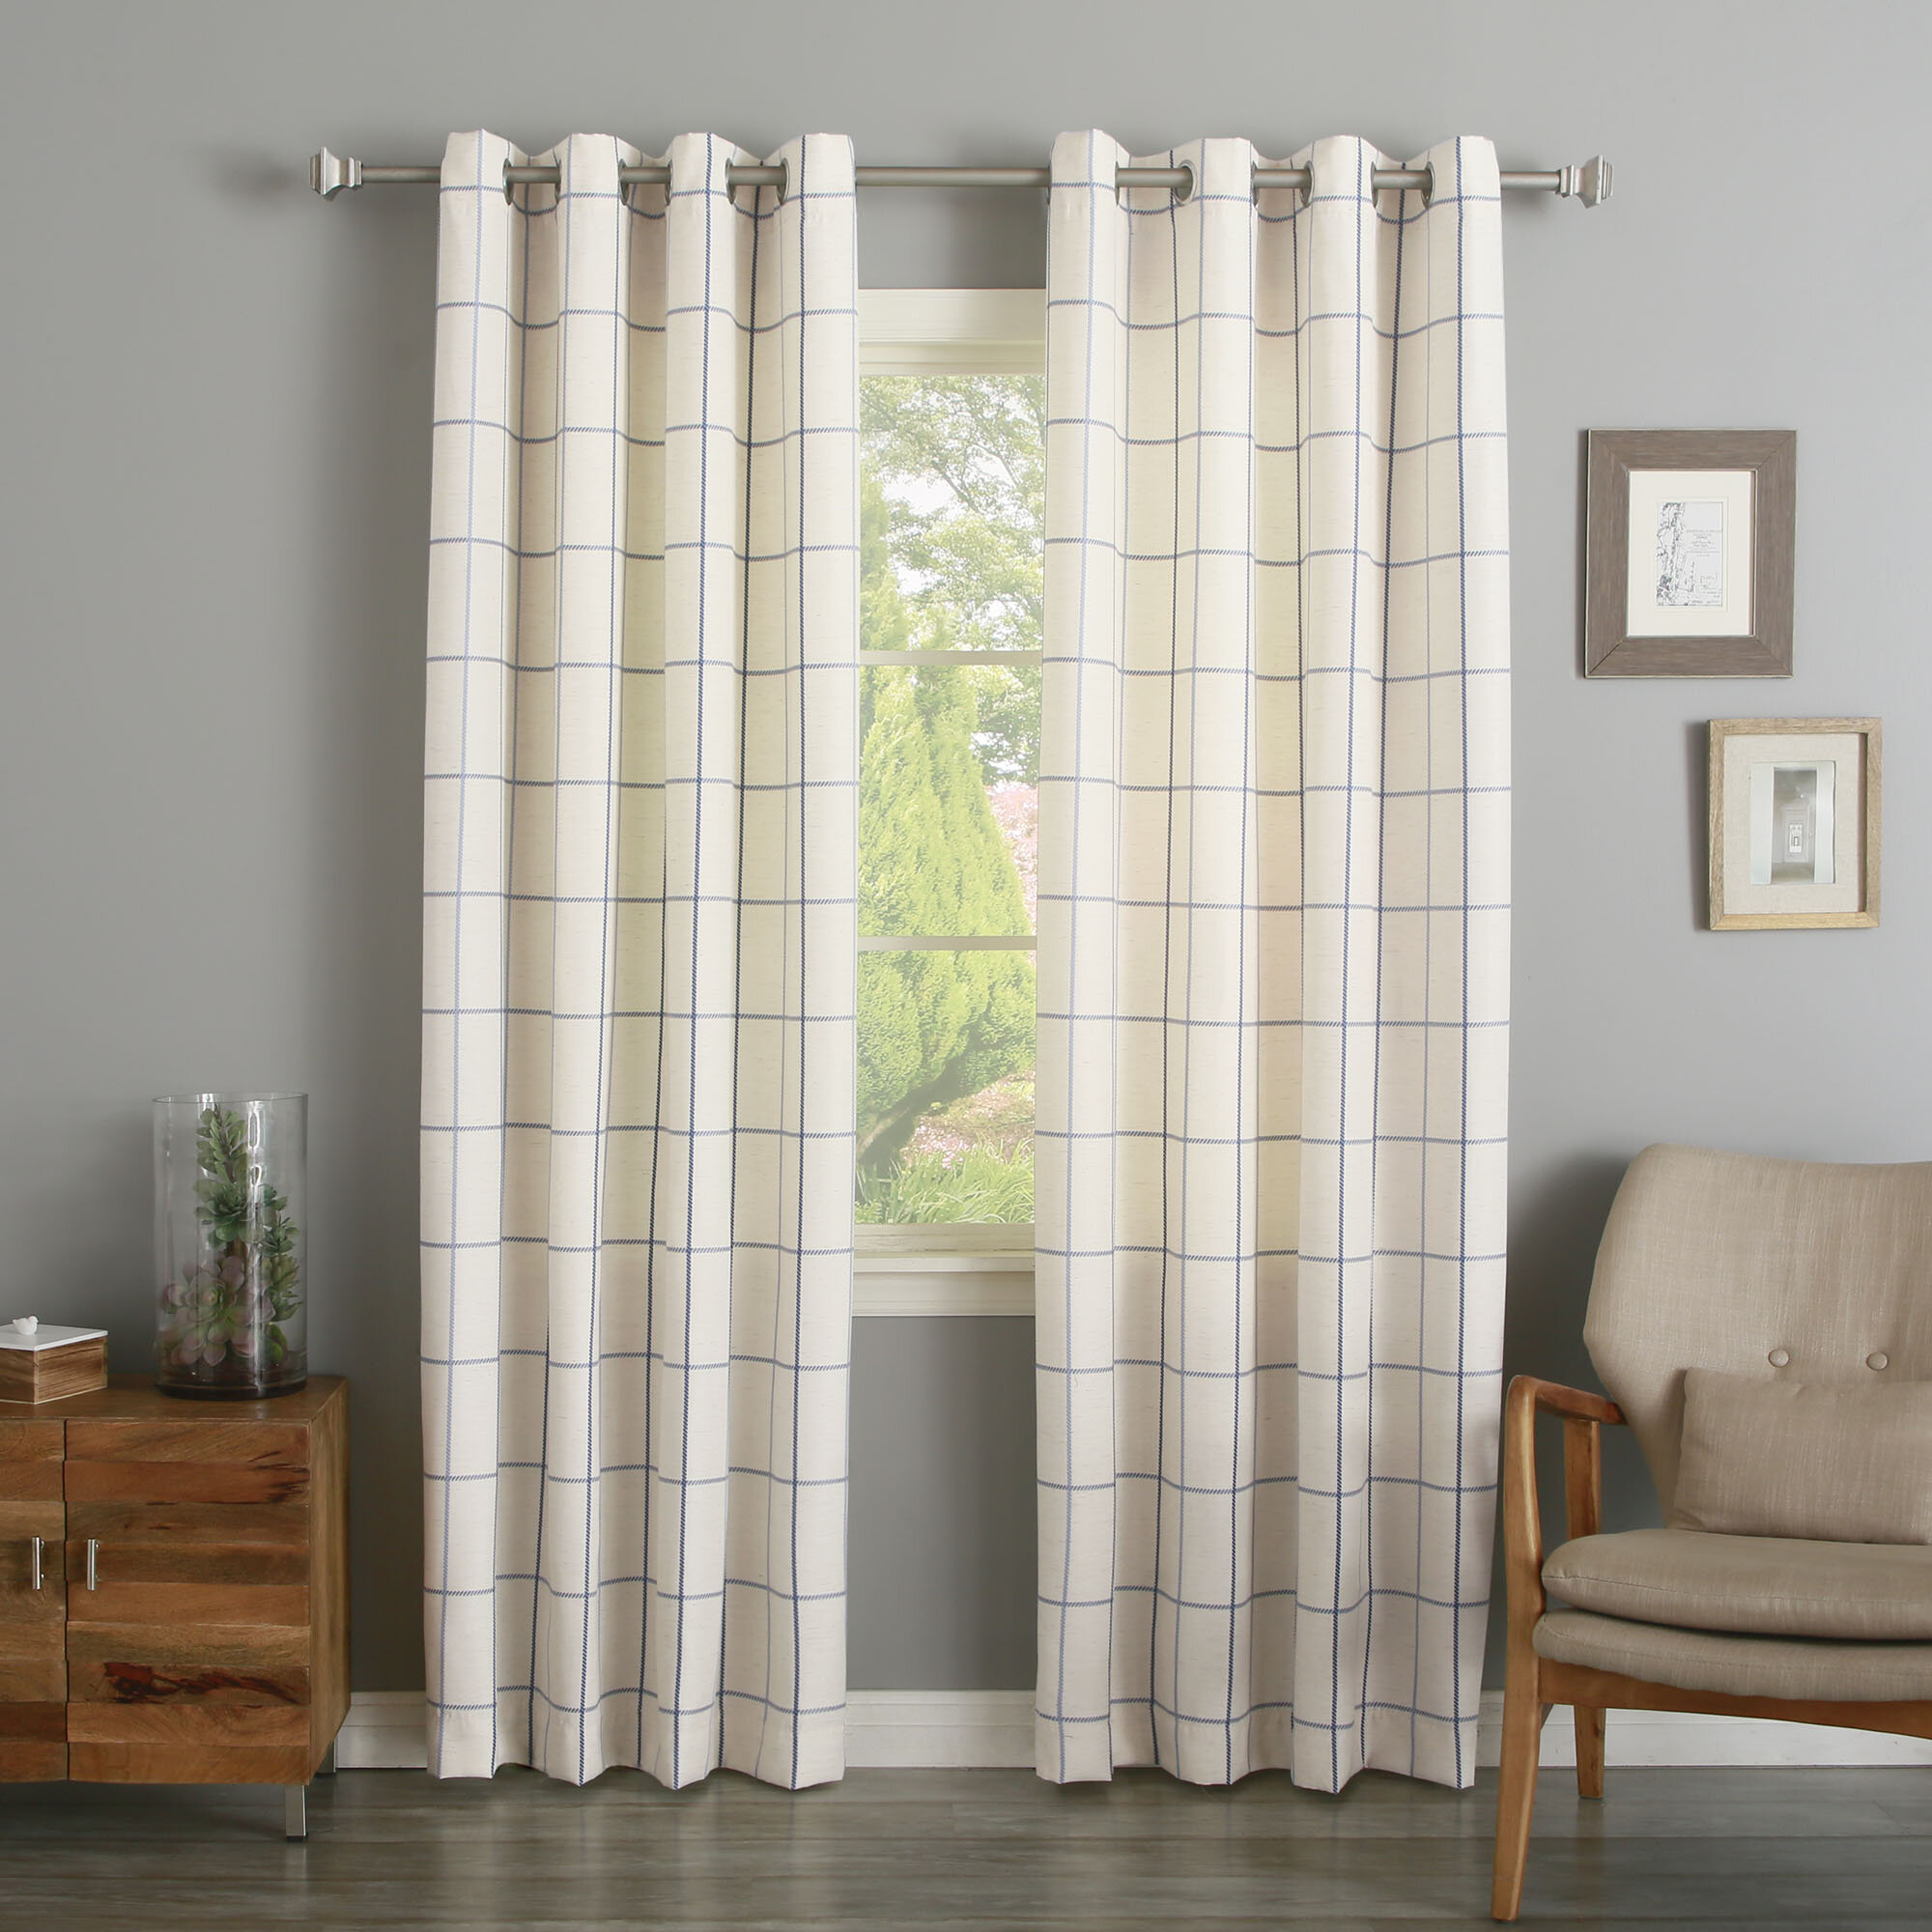 sheer in printed curtains aqua drapes x p extra rod curtain pinehurst w wide panel window pocket elements panels l